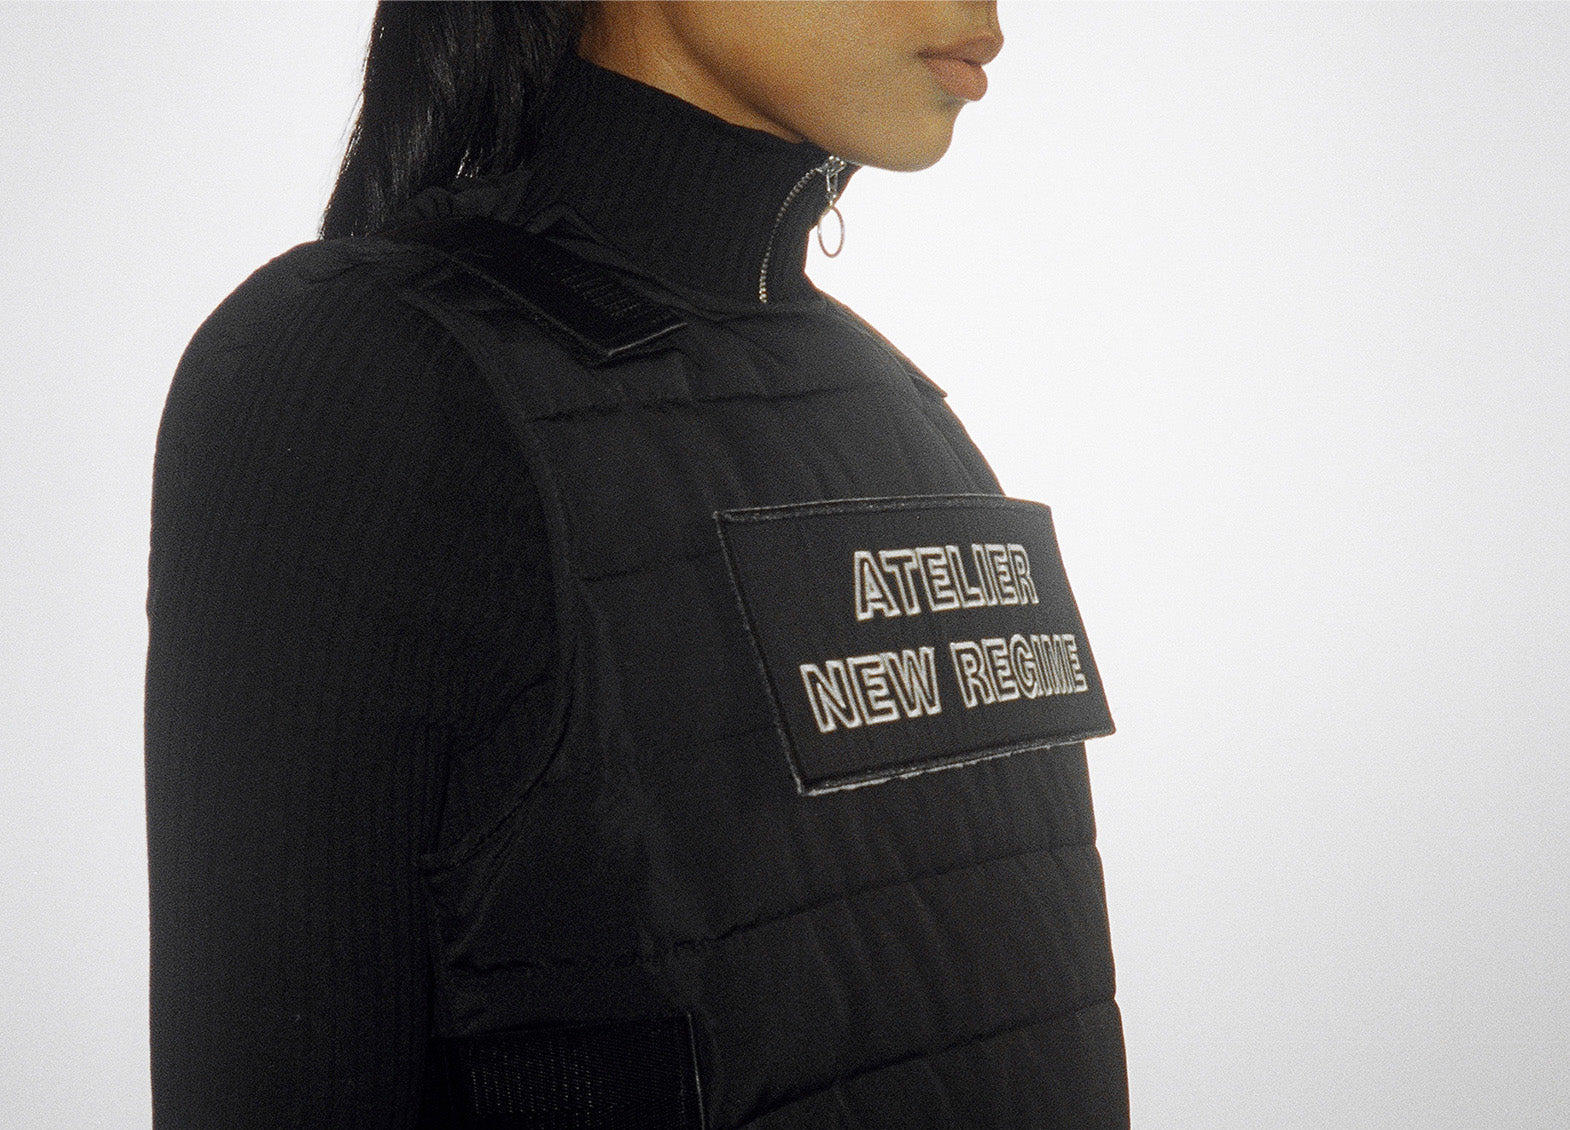 Atelier New Regime - Tactical Vest